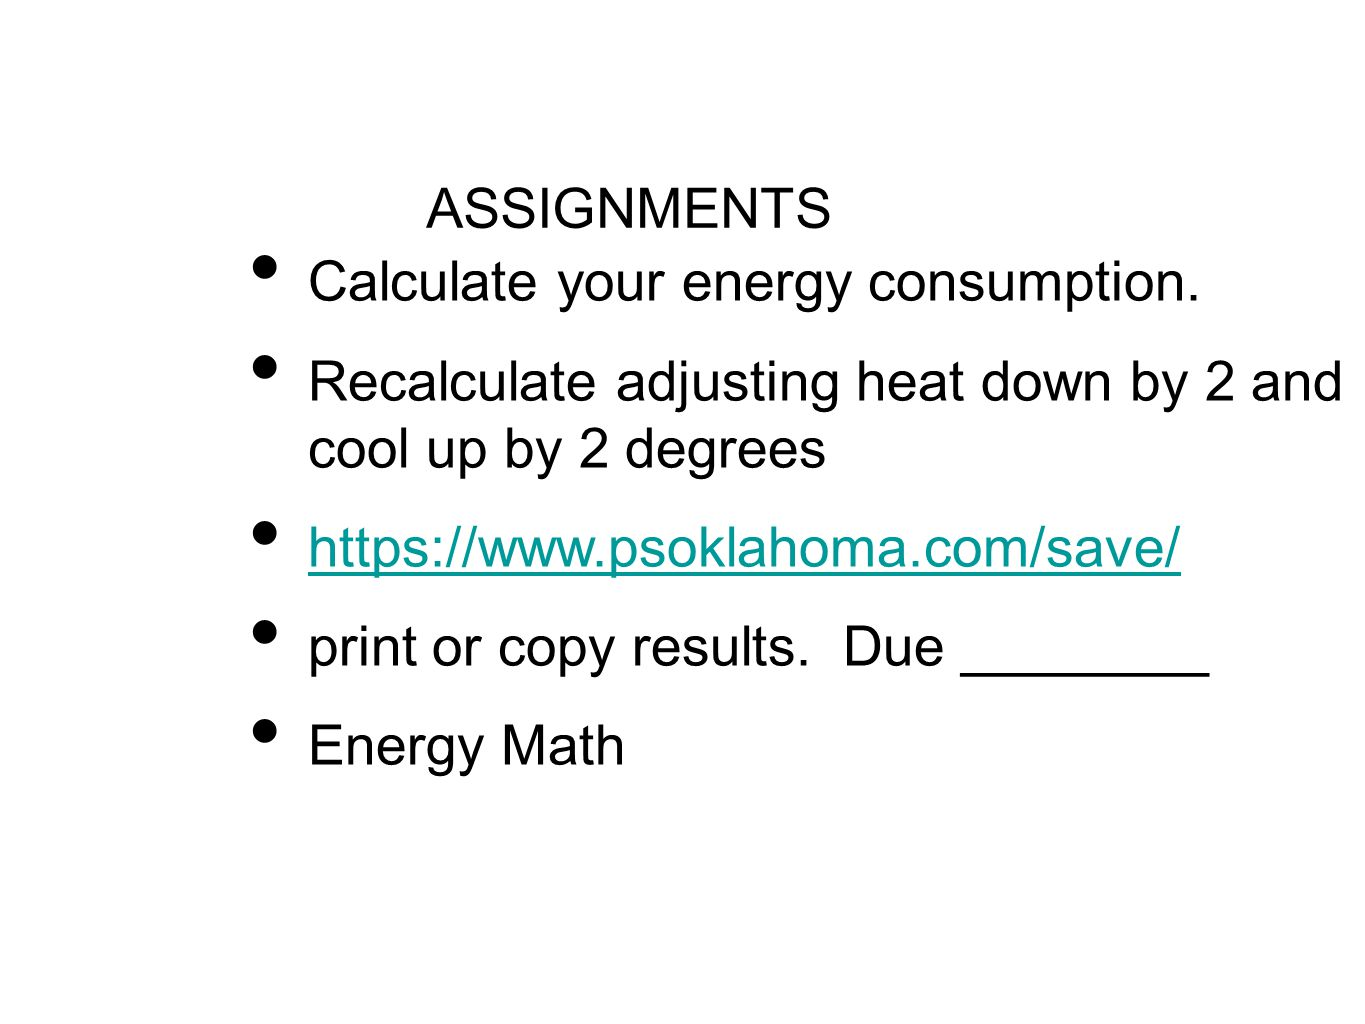 ASSIGNMENTS Calculate your energy consumption. Recalculate adjusting heat down by 2 and cool up by 2 degrees.